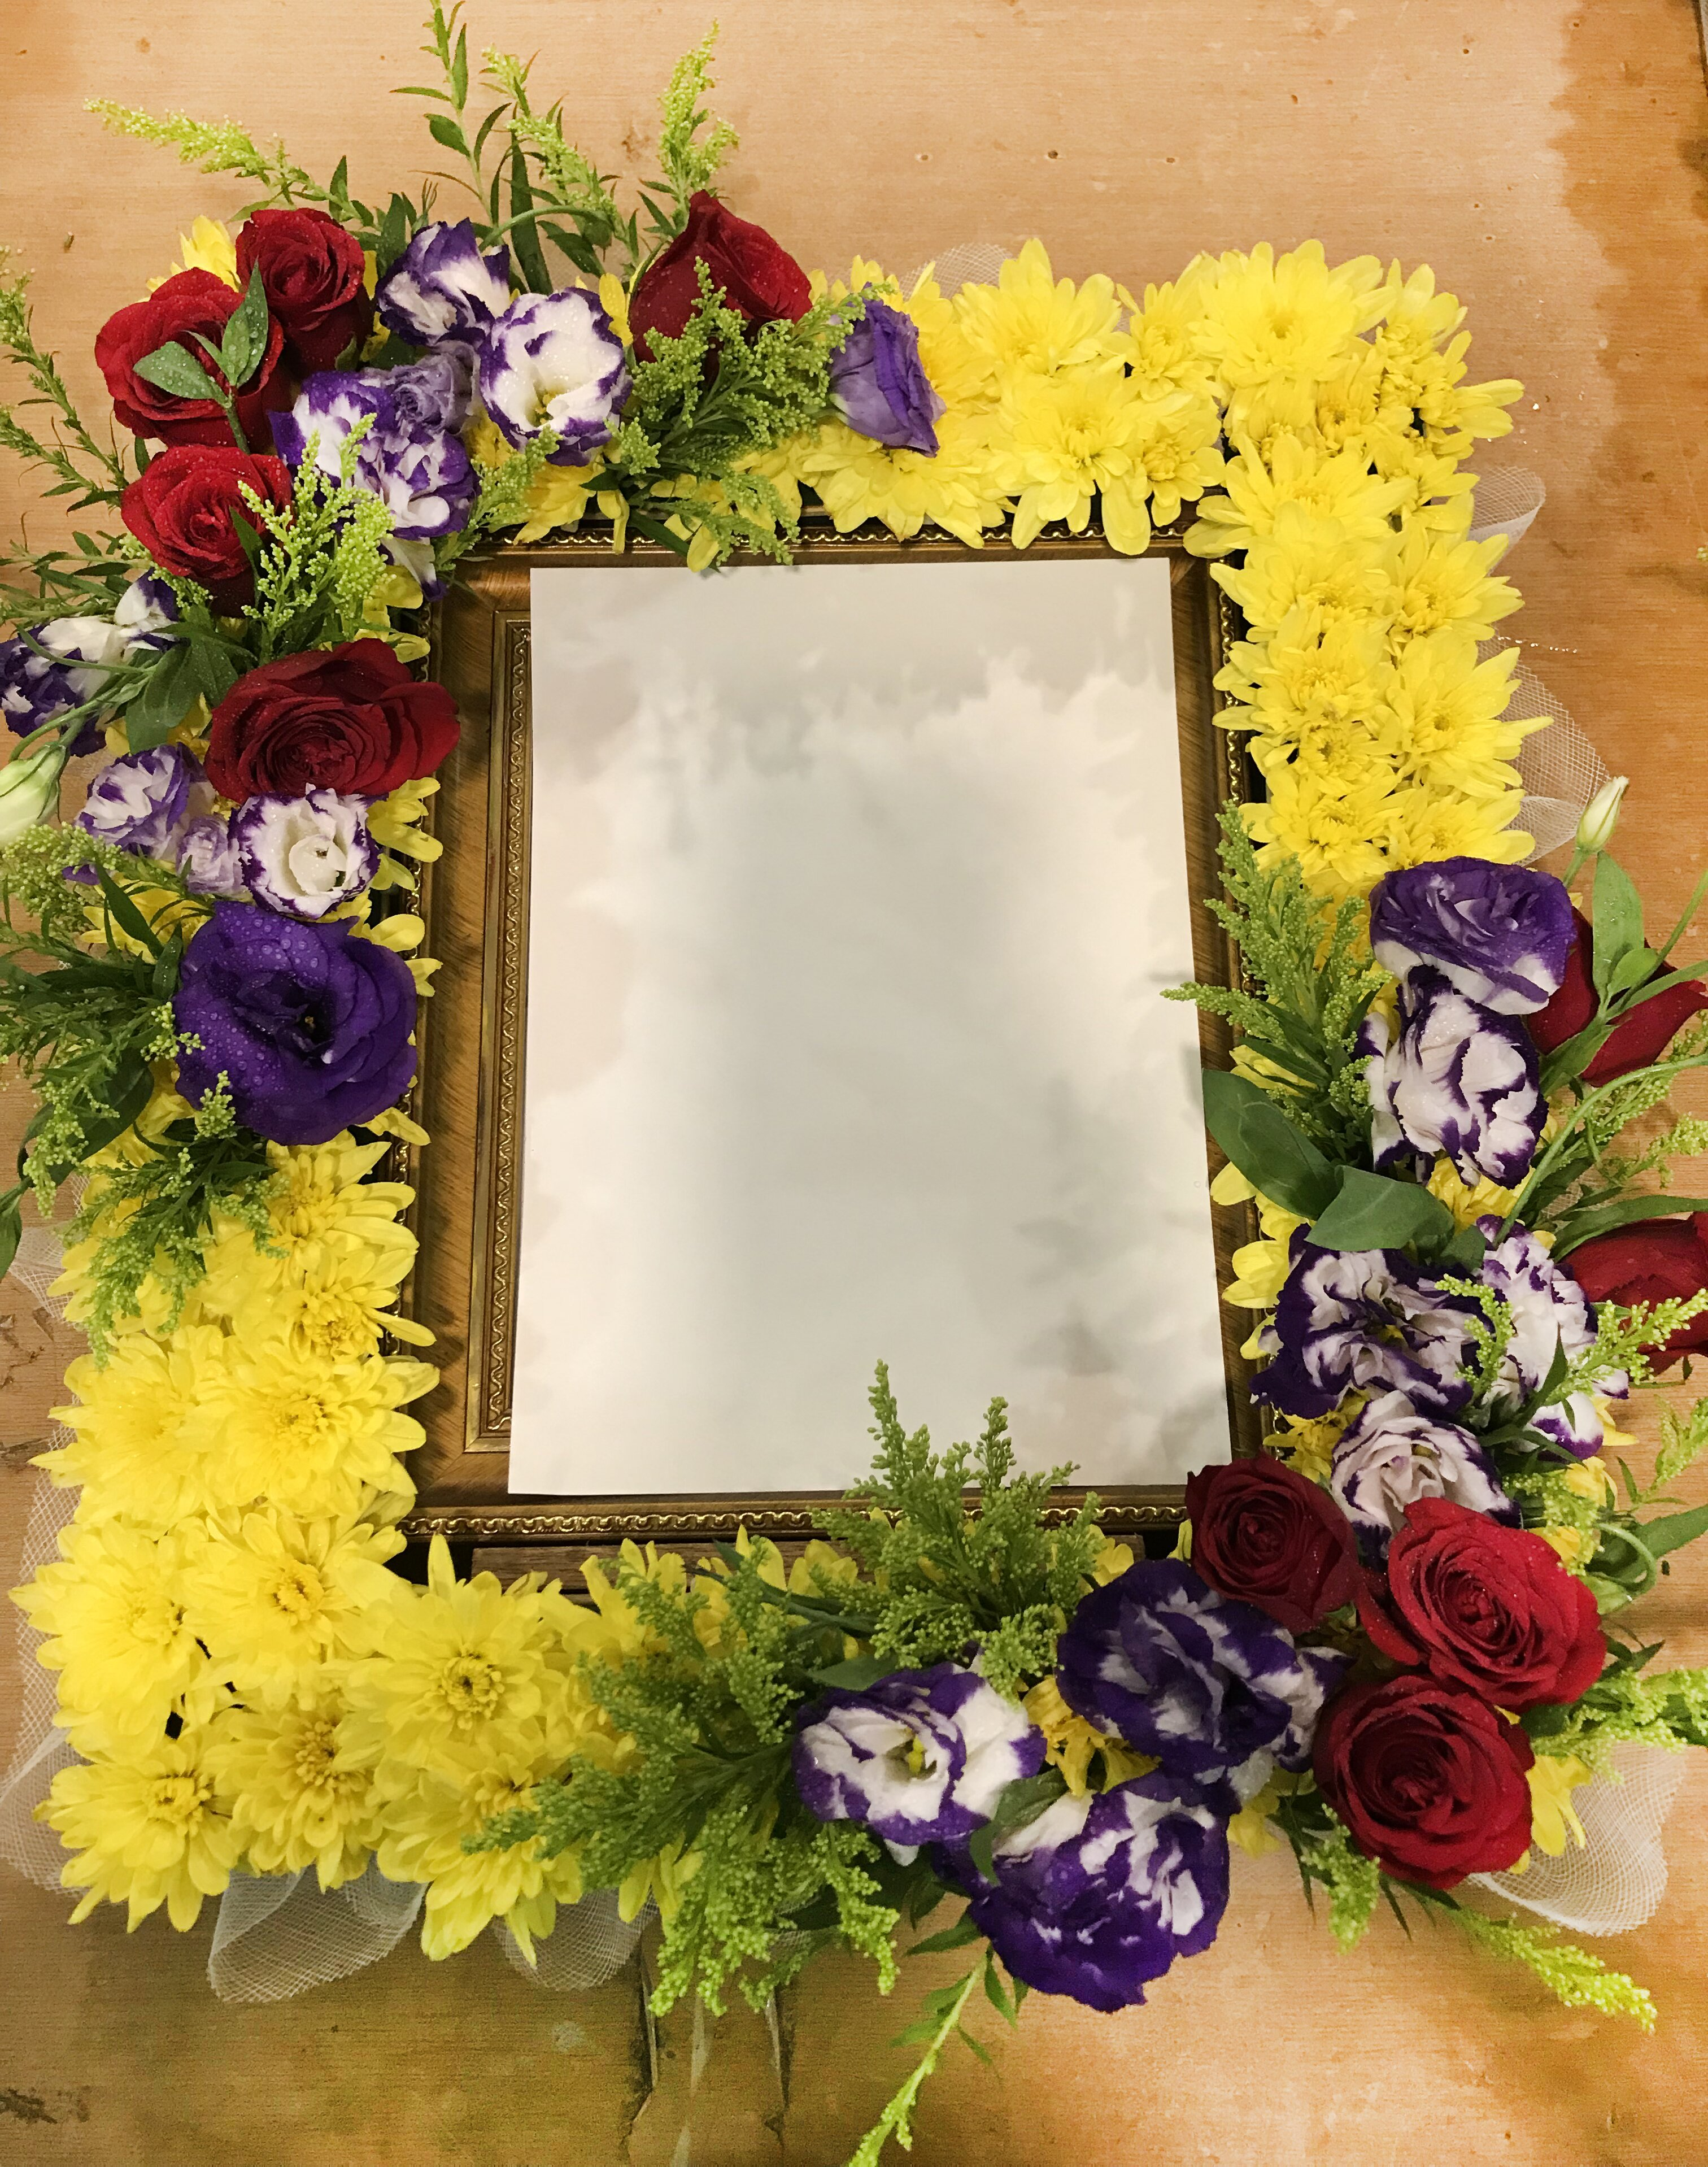 Forever In Our Heart - Freeland Floral 自由花苑